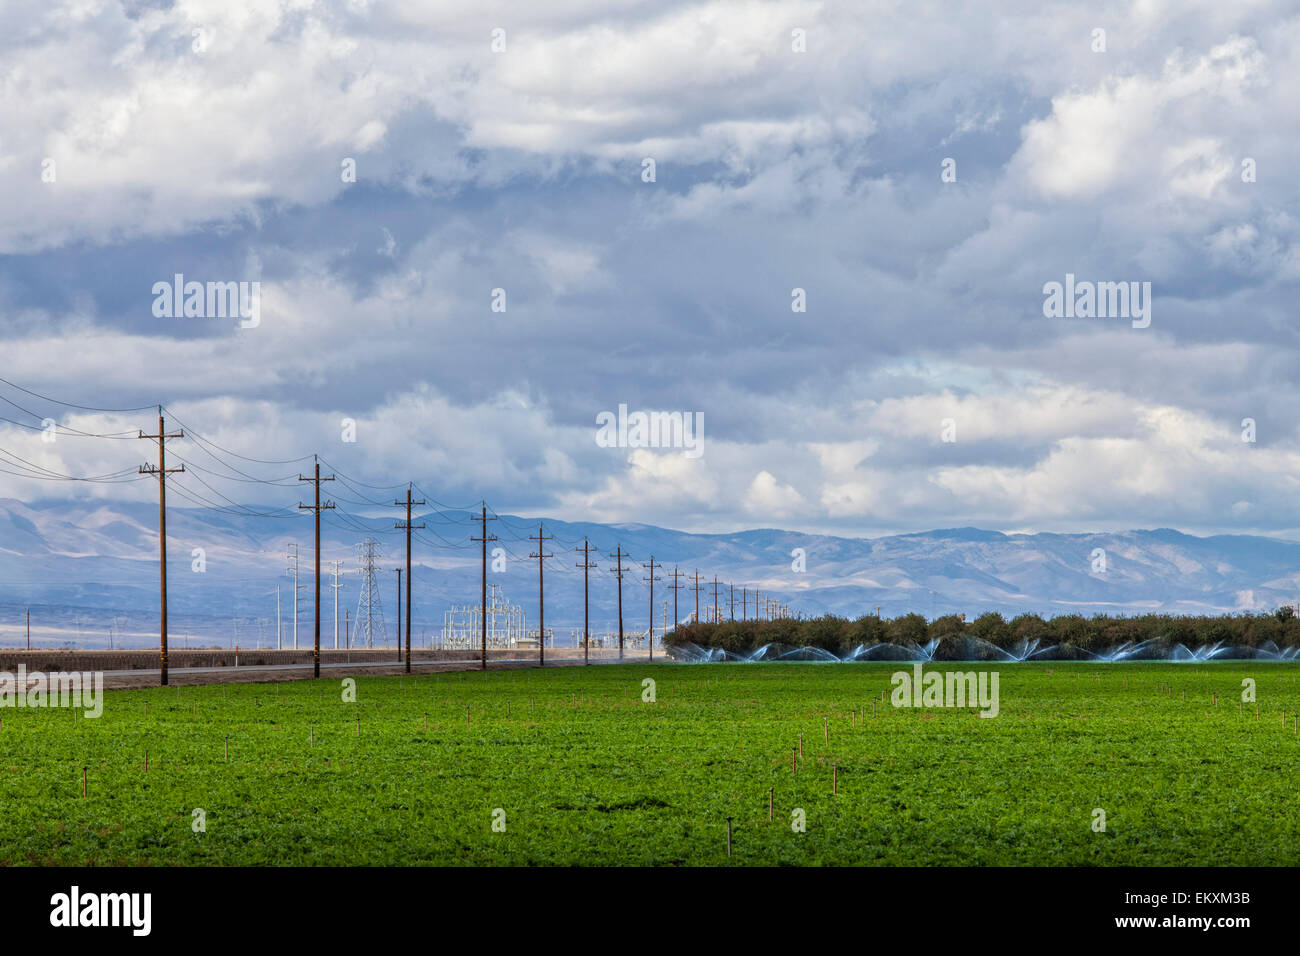 Crops being irrigated in Kern County, San Joaquin Valley, California, USA - Stock Image